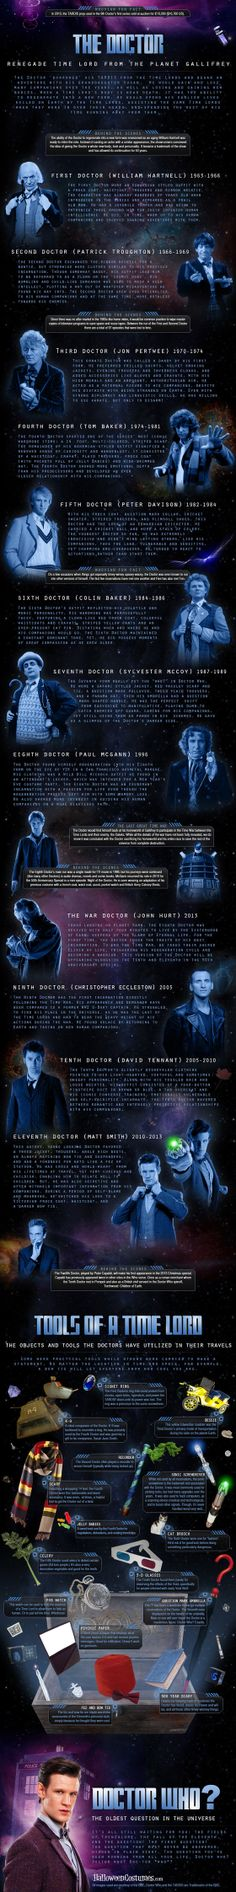 Doctor Who: 50 Years of Travelling Through Time and  Space Infographic | Moviepilot: New Stories for Upcoming Movies